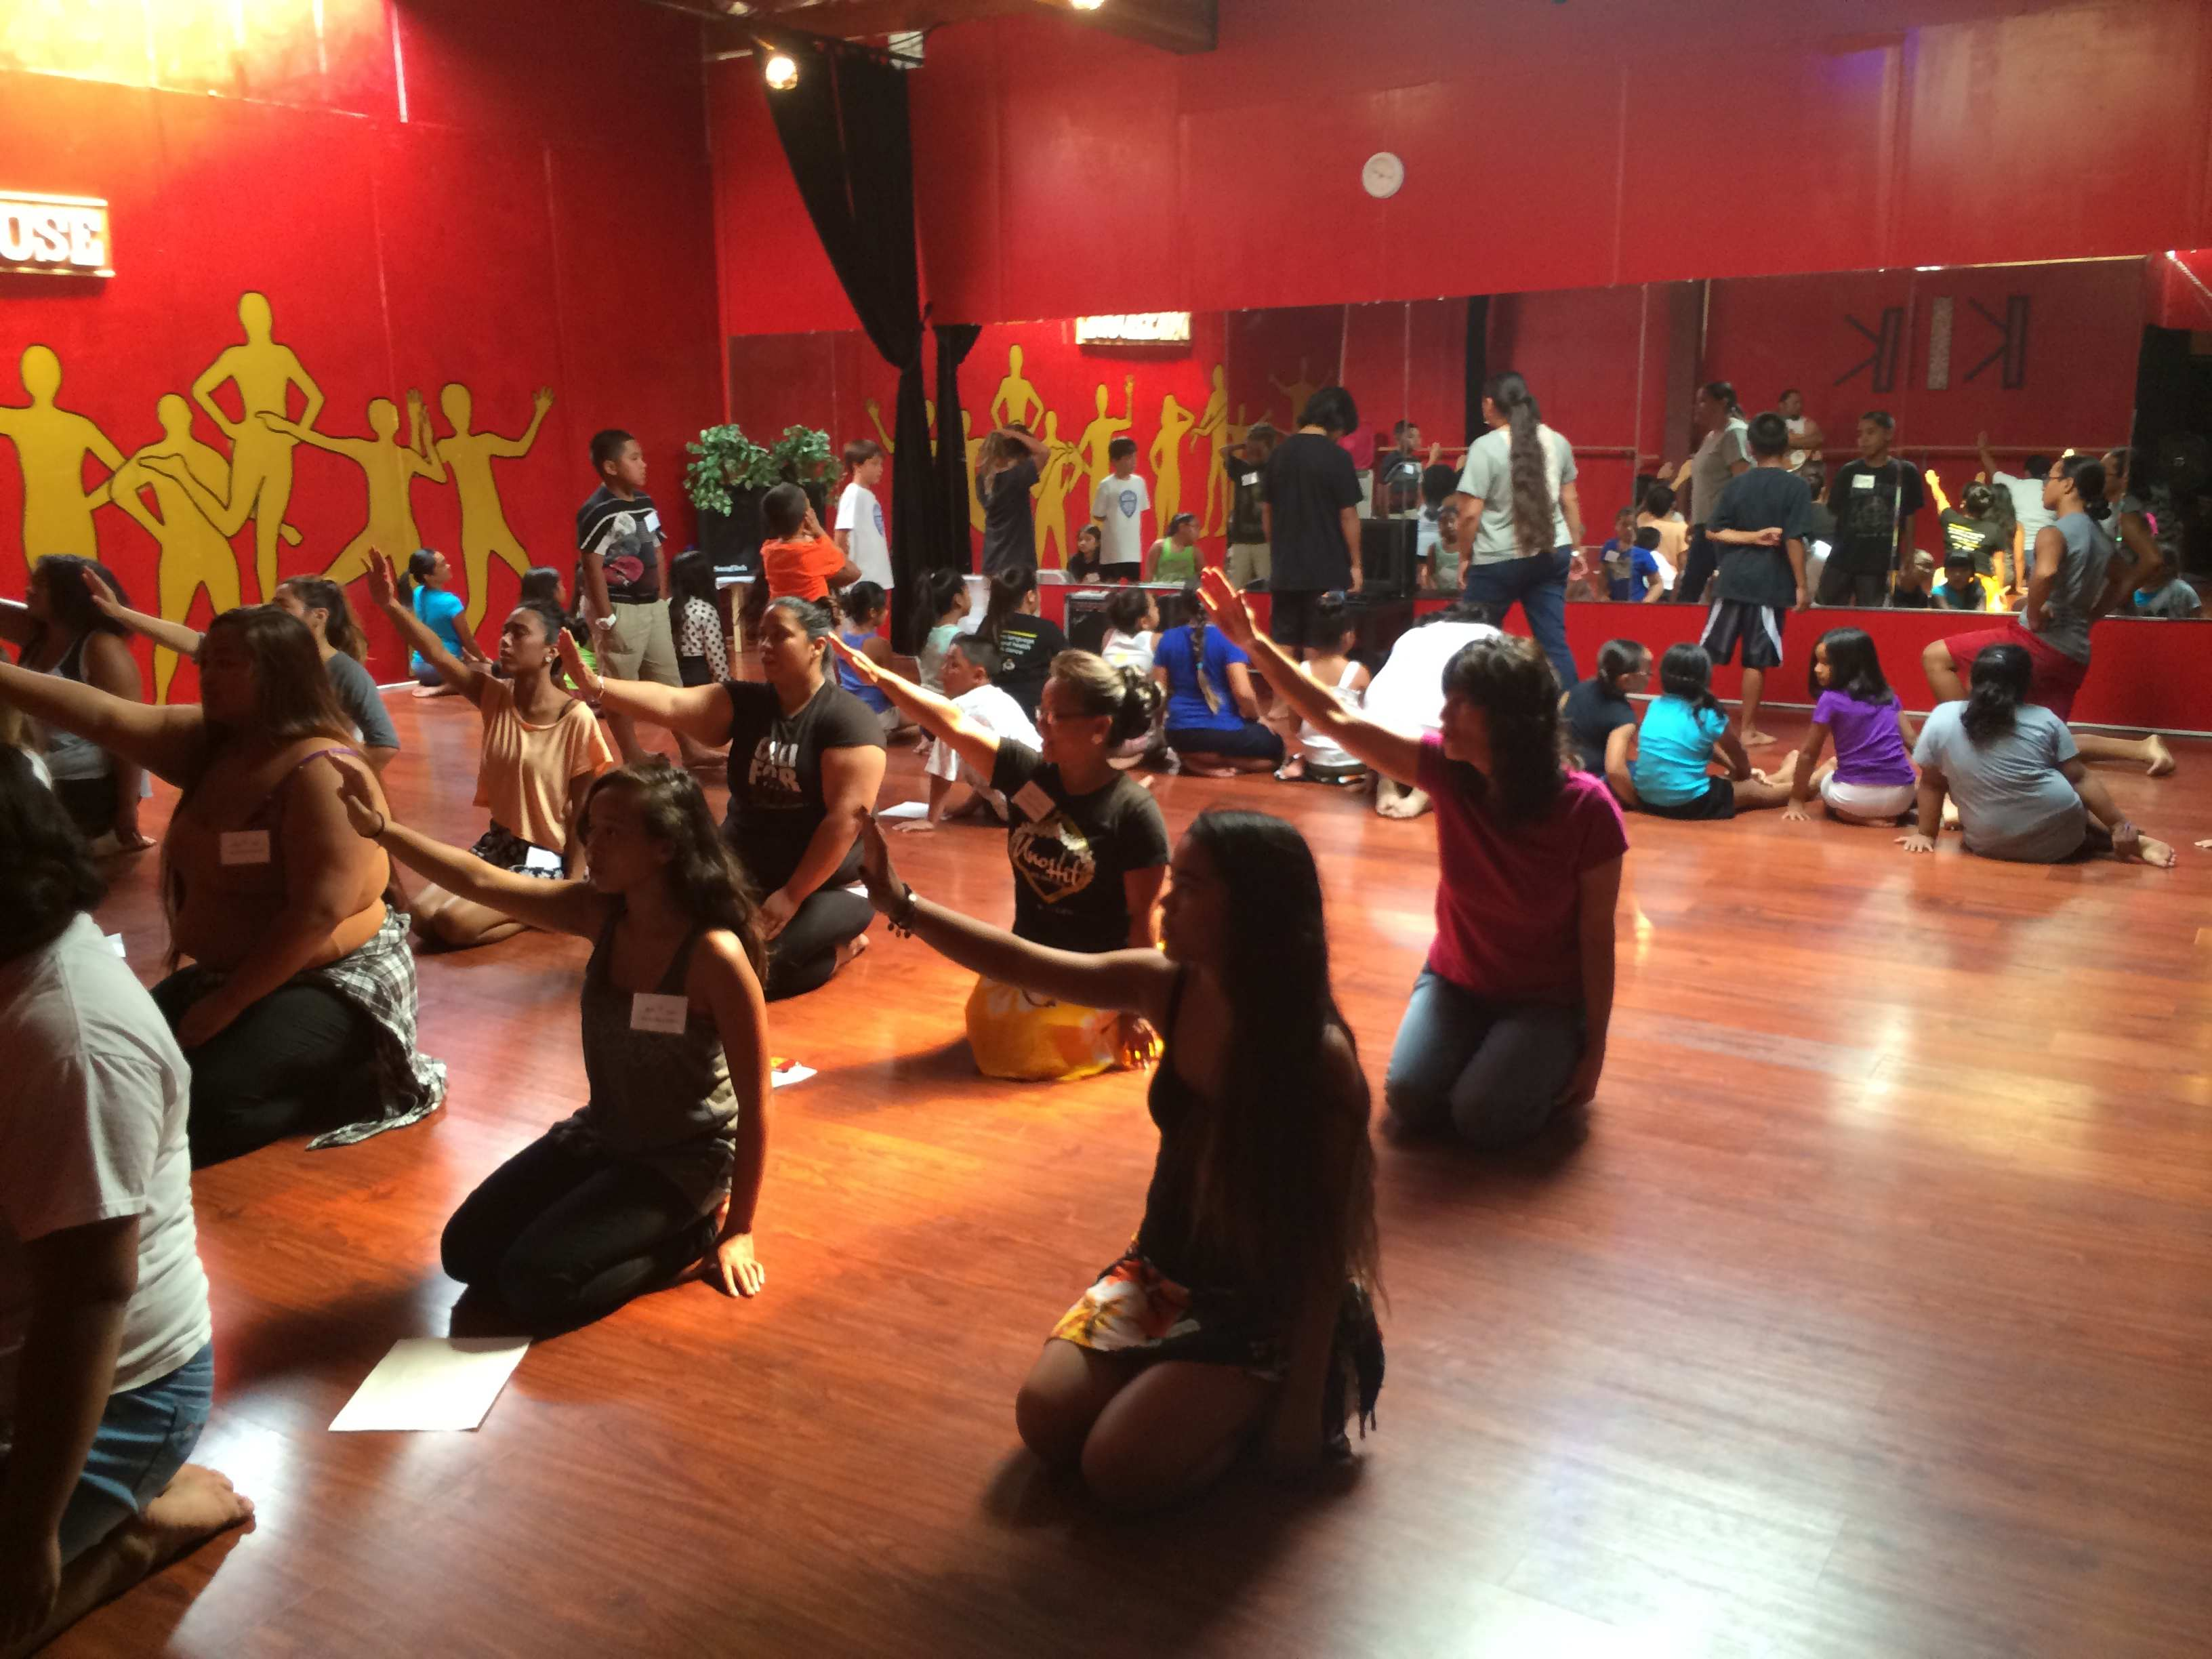 Uno Hit rehearses at a local dance studio in San Diego.